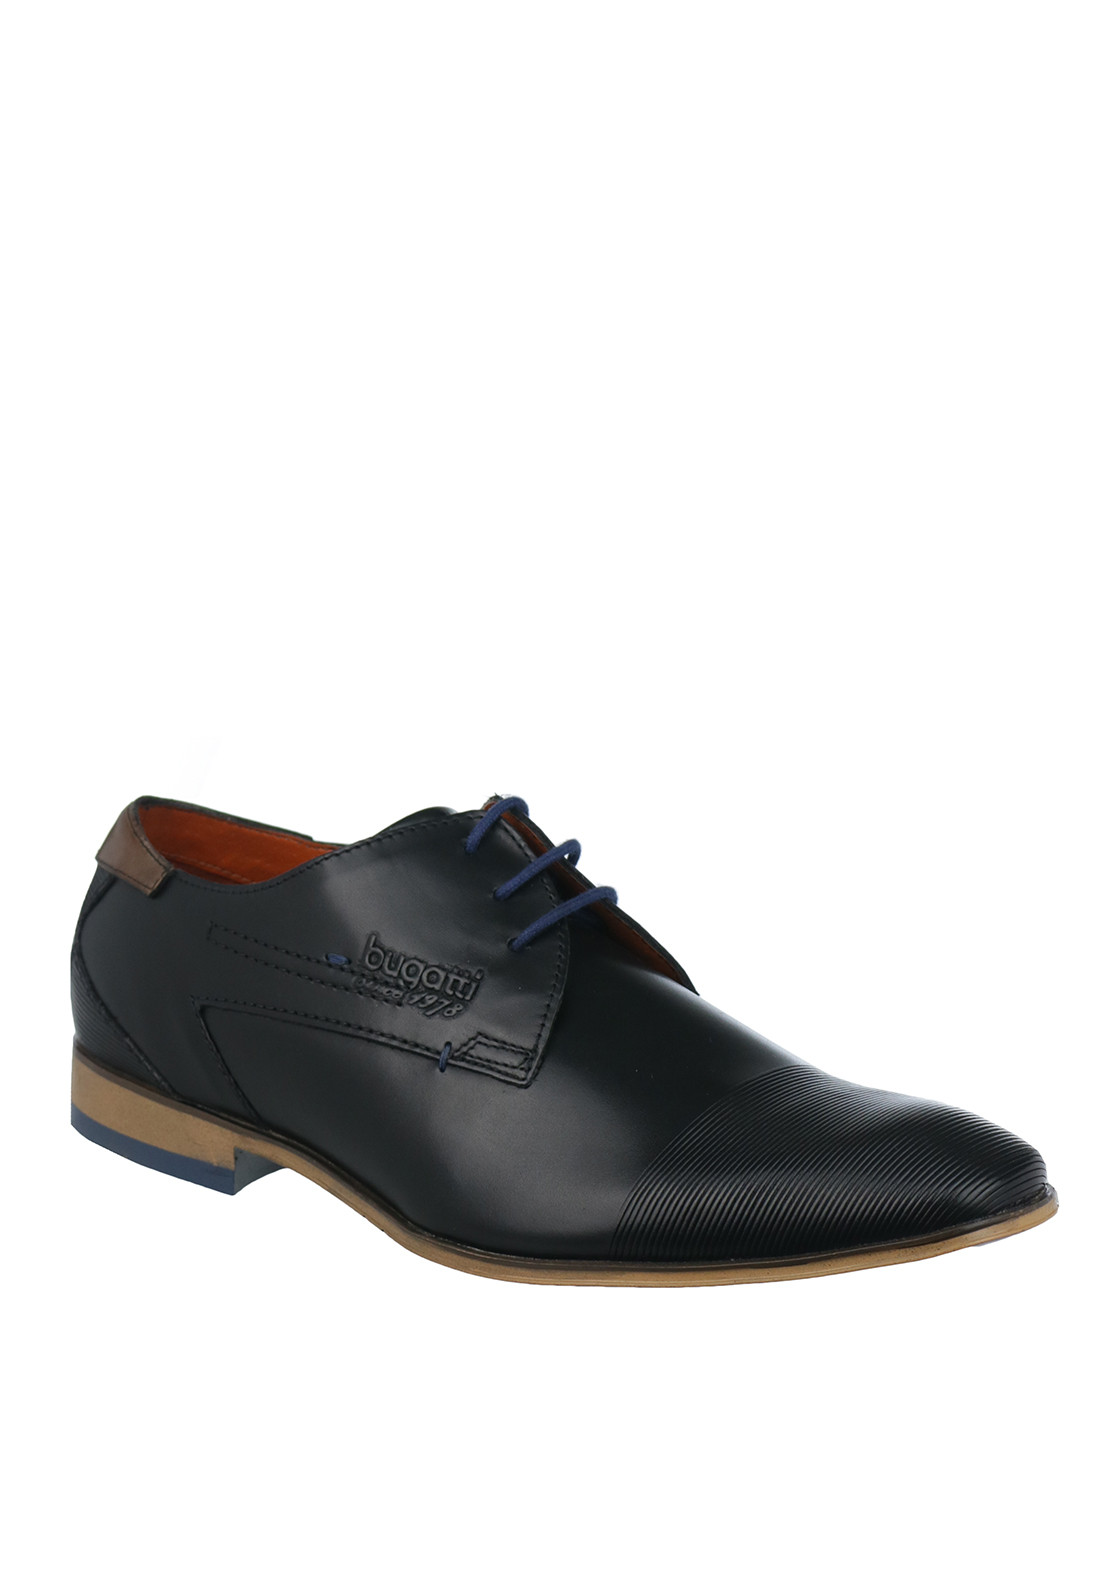 Bugatti Lace Up Textured Leather Shoe, Black